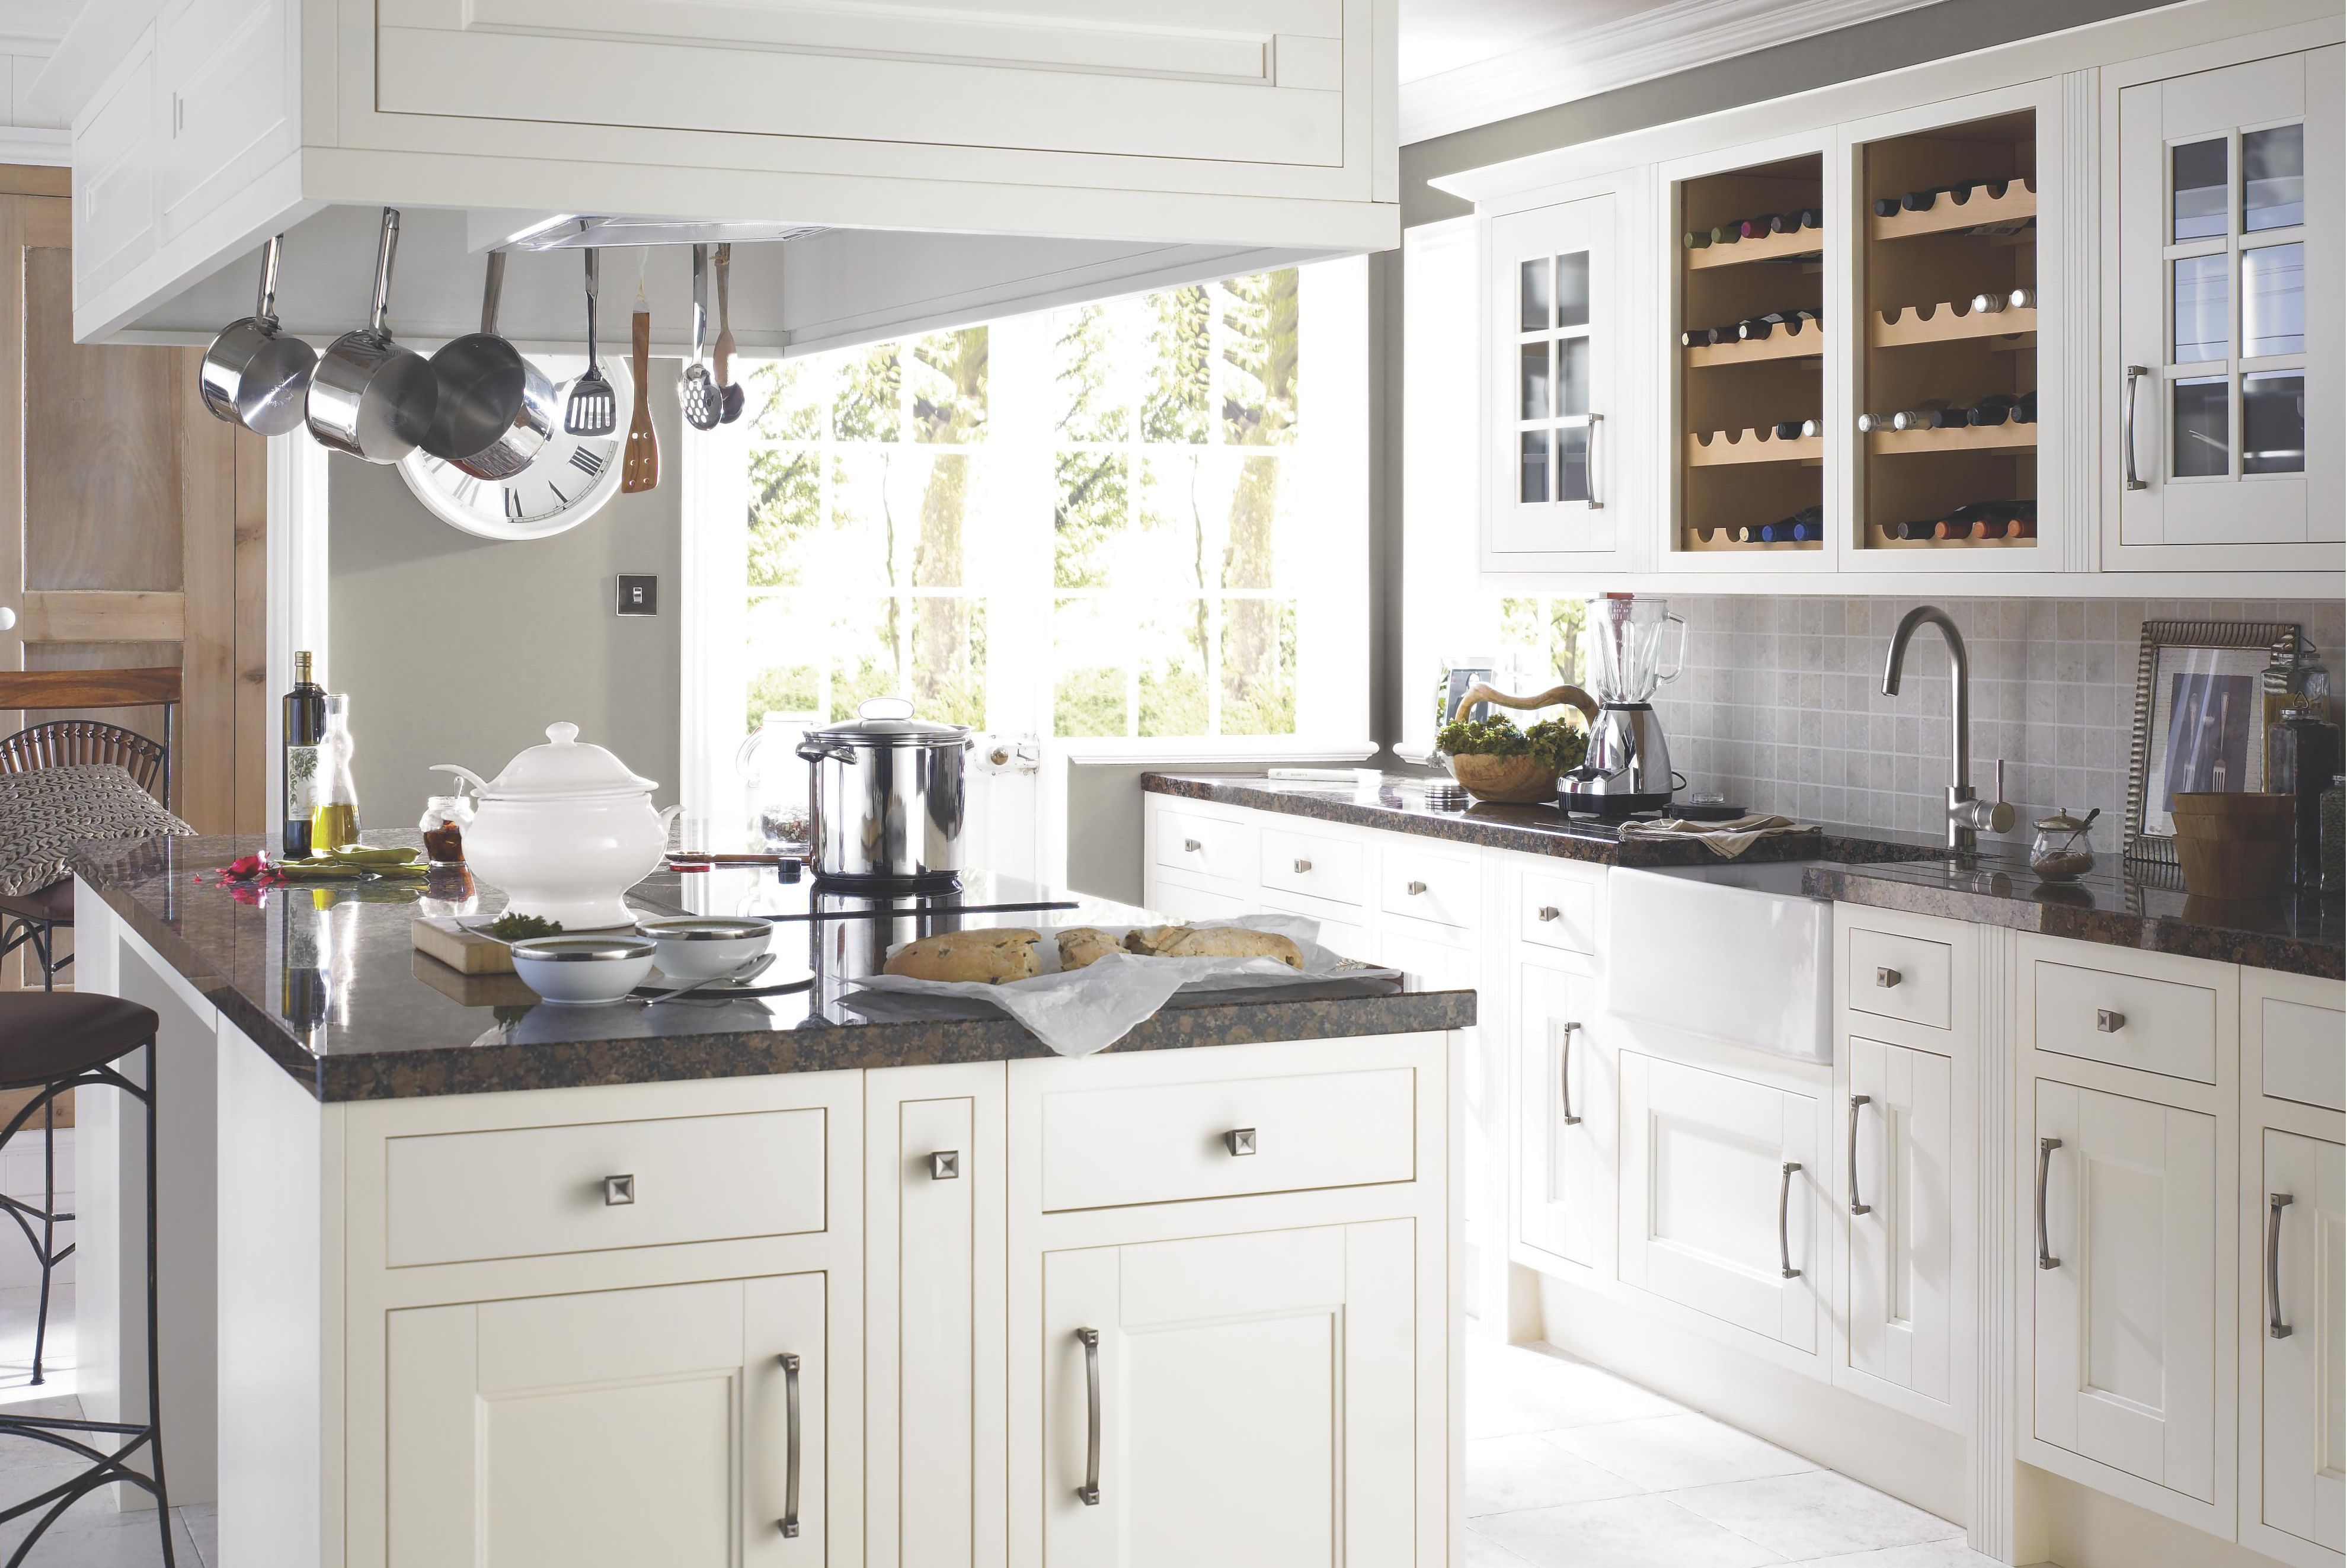 Remarkable B&Q Kitchens 3960 x 2646 · 826 kB · jpeg